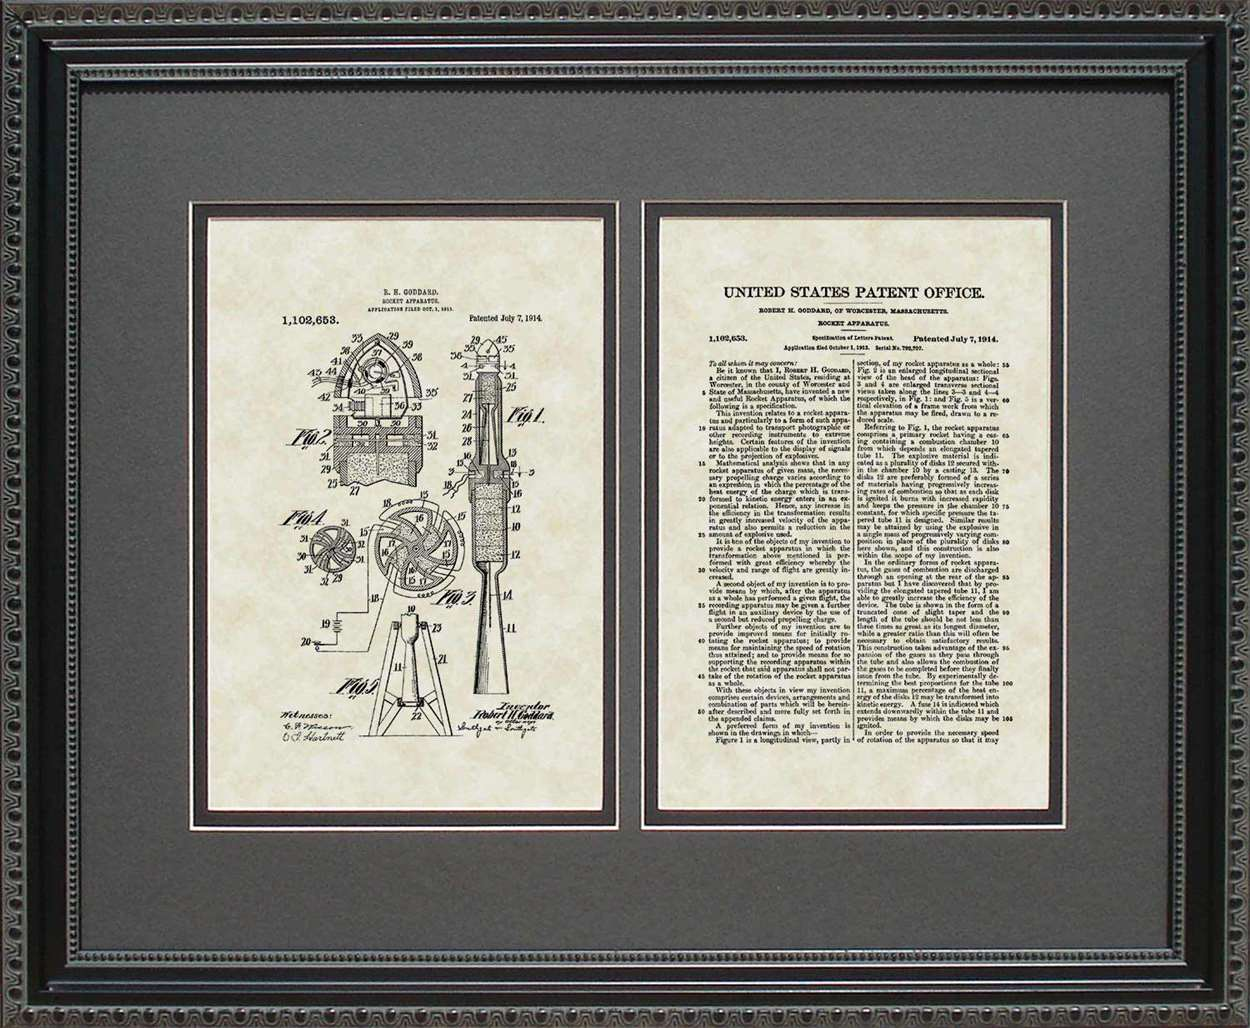 Rocket Patent, Art & Copy, Goddard, 1914, 16x20